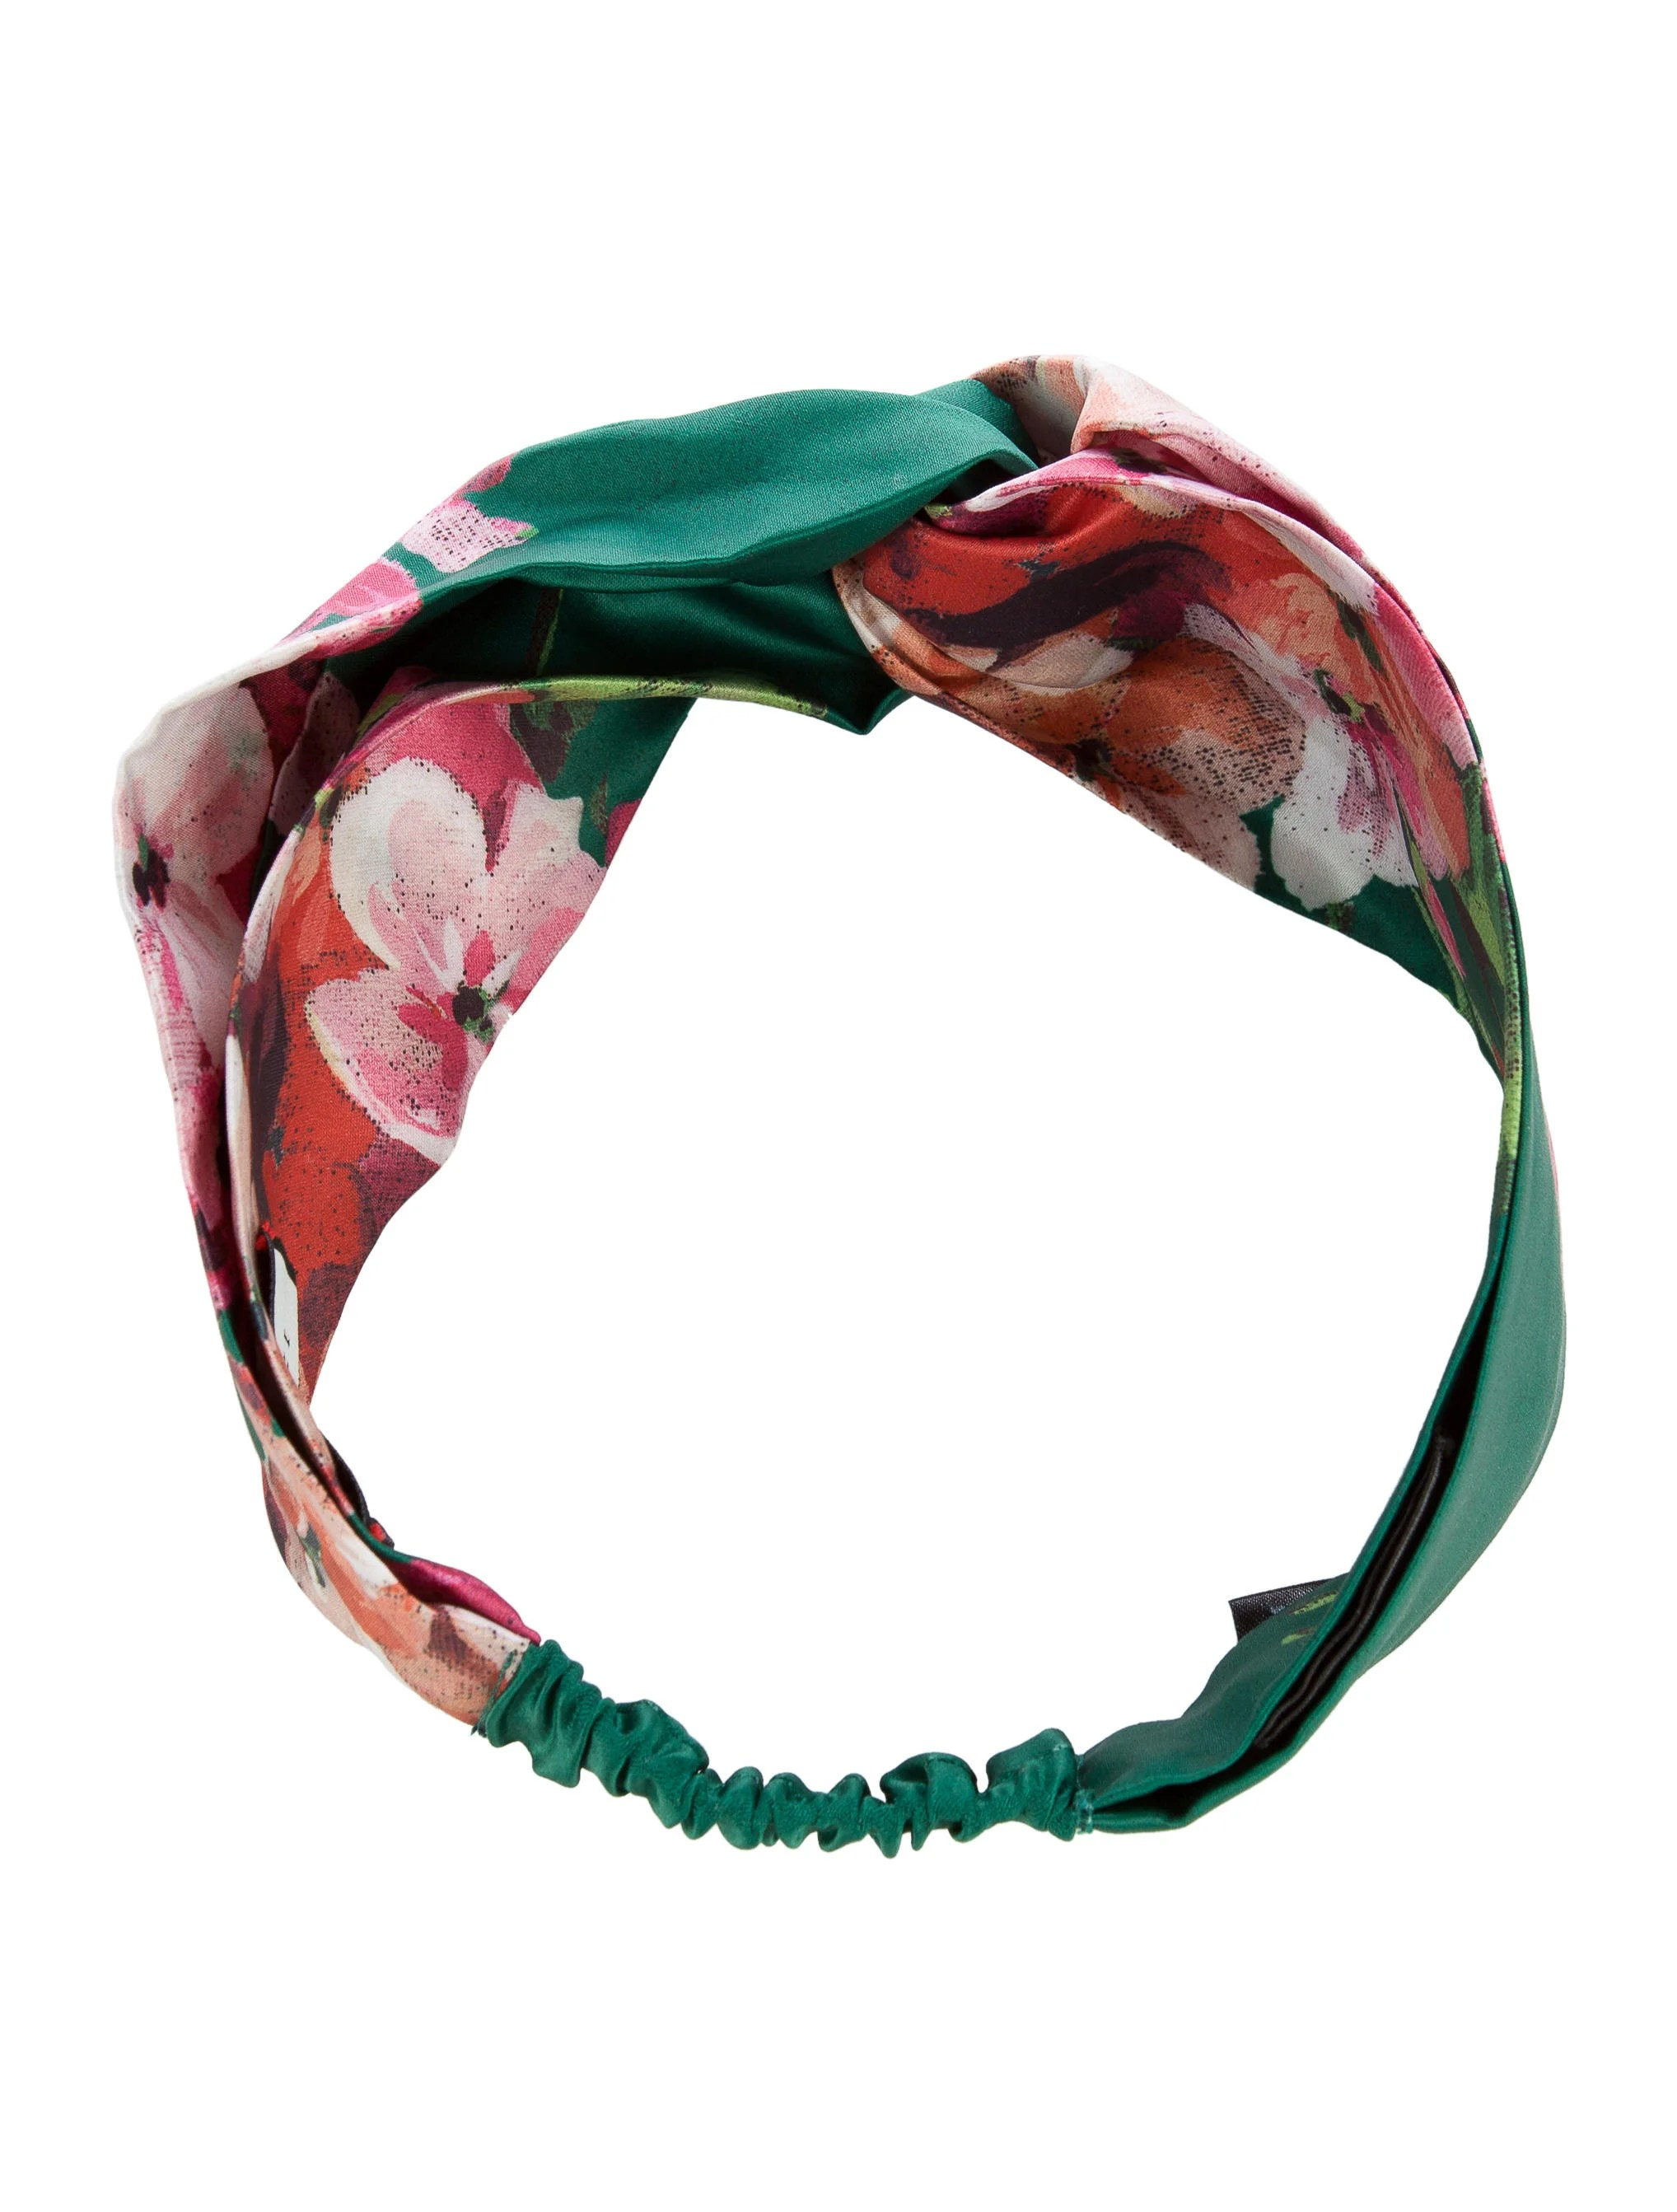 Bloom Accessoires Gucci Blooms Printed Silk Headband Accessories